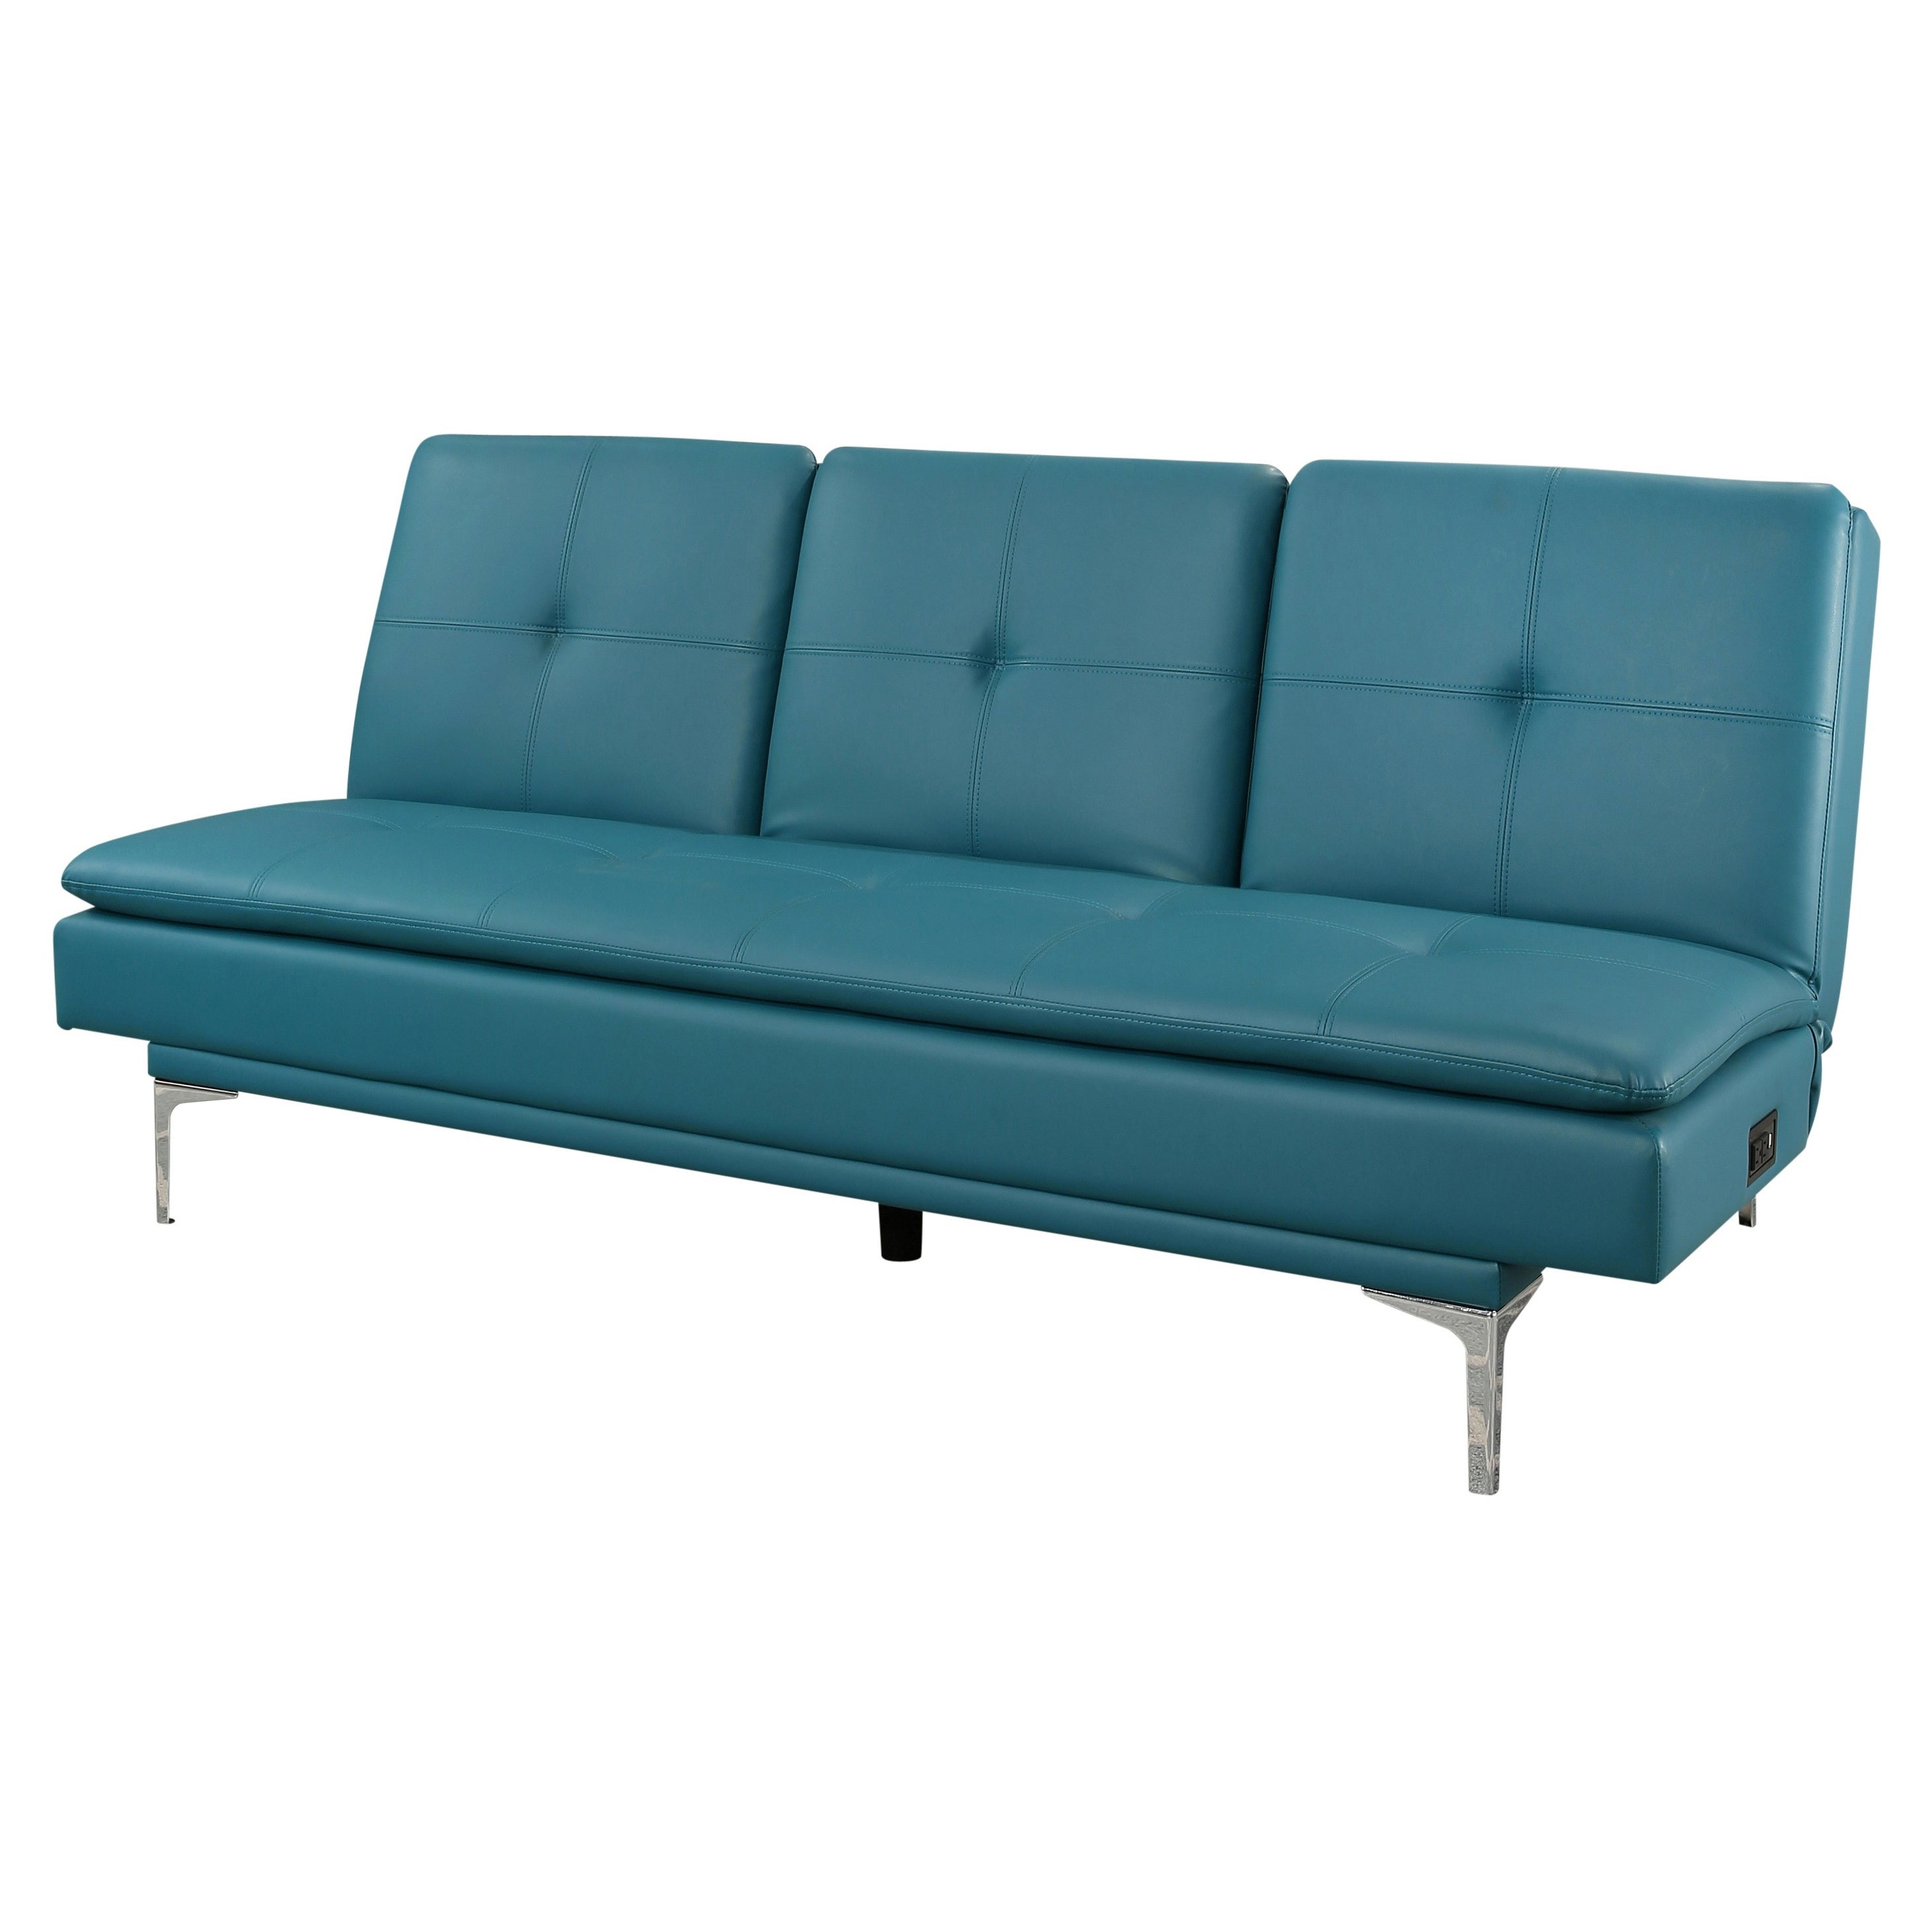 Abbyson Kilby Turquoise Bonded Leather Sofa bed with Console and USB